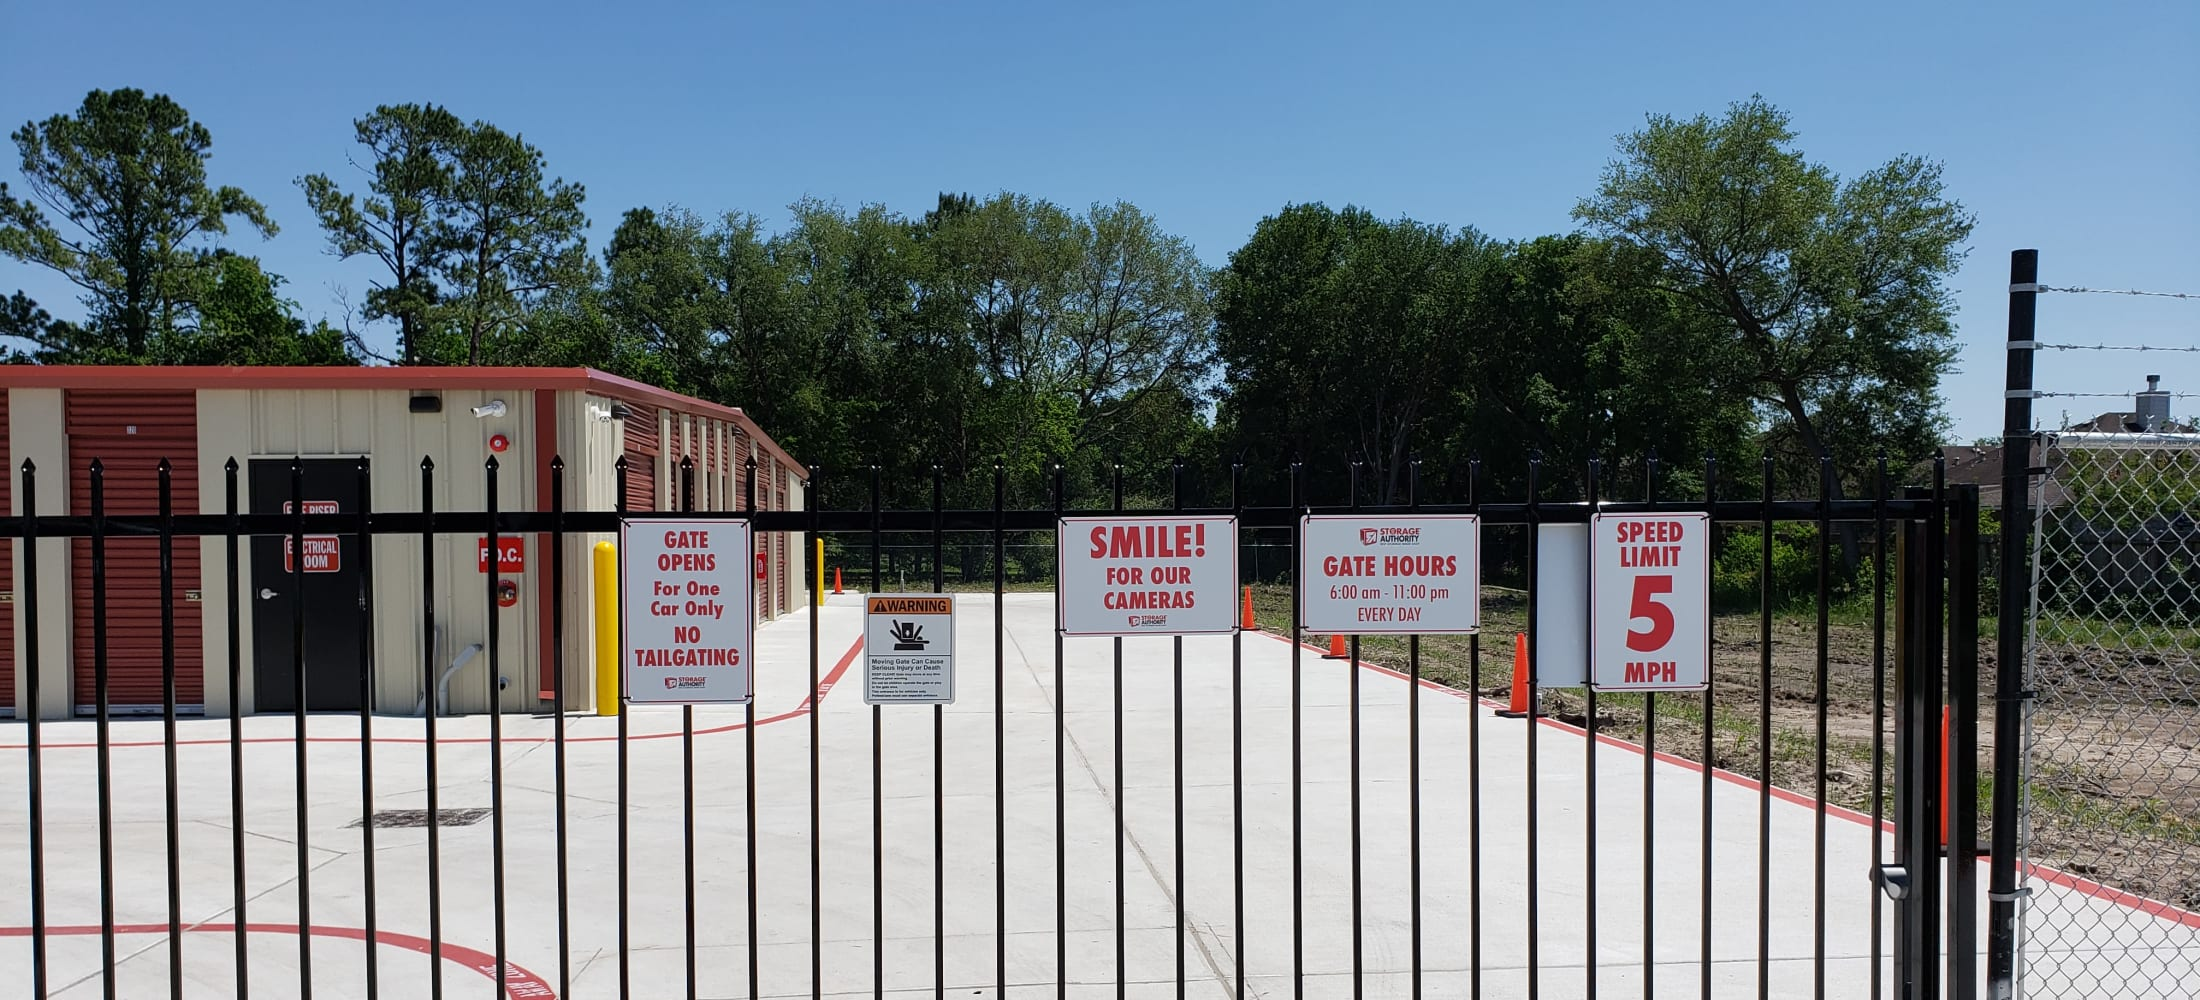 Gated entrance at Storage Authority Walters Rd in Houston, TX